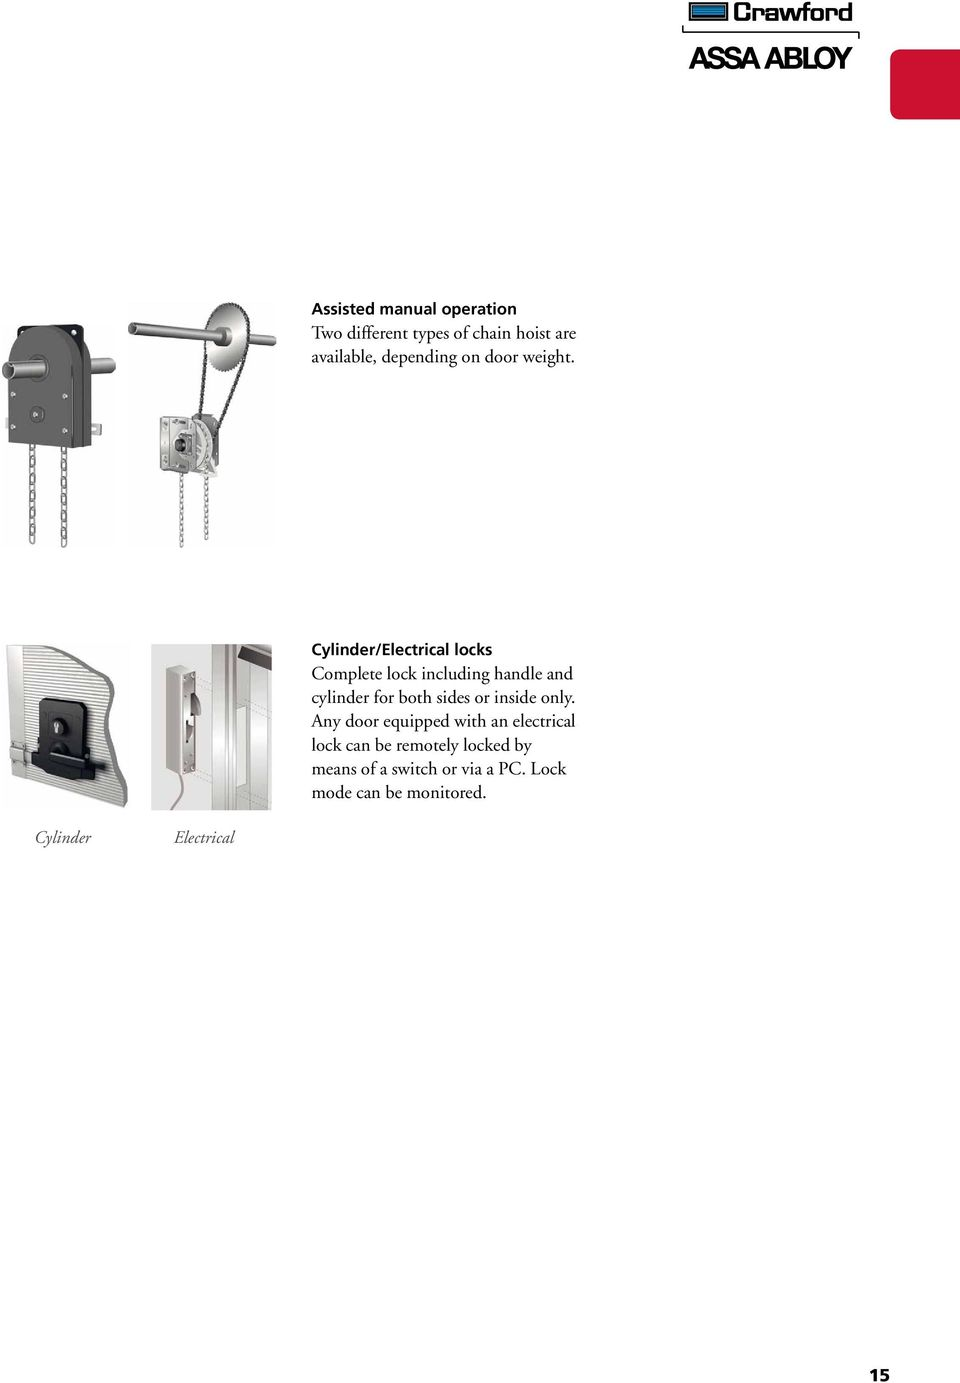 Crawford Product Catalogue Pdf Assa Abloy Wiring Diagrams Cylinder Electrical Locks Complete Lock Including Handle And For Both Sides Or